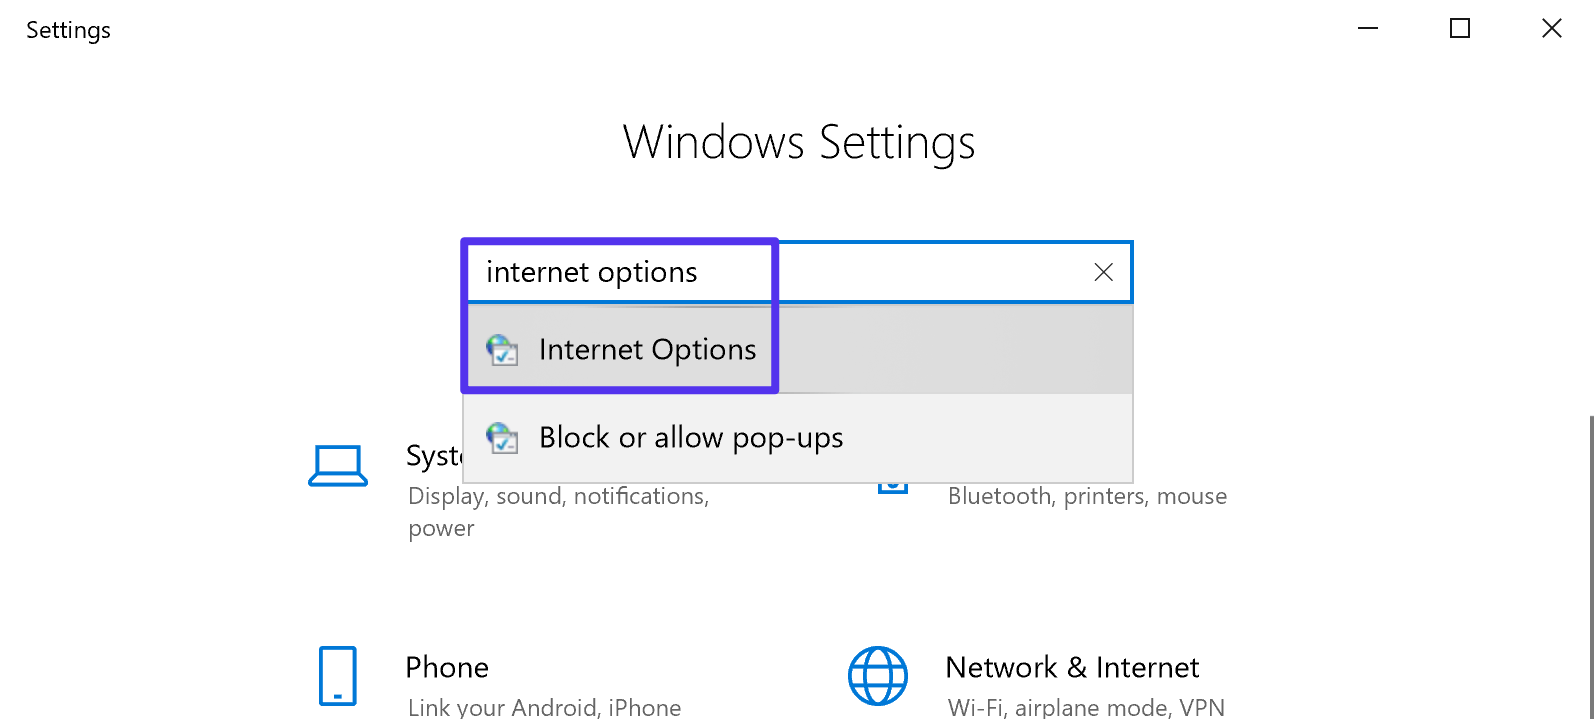 How to access Internet Options in Windows